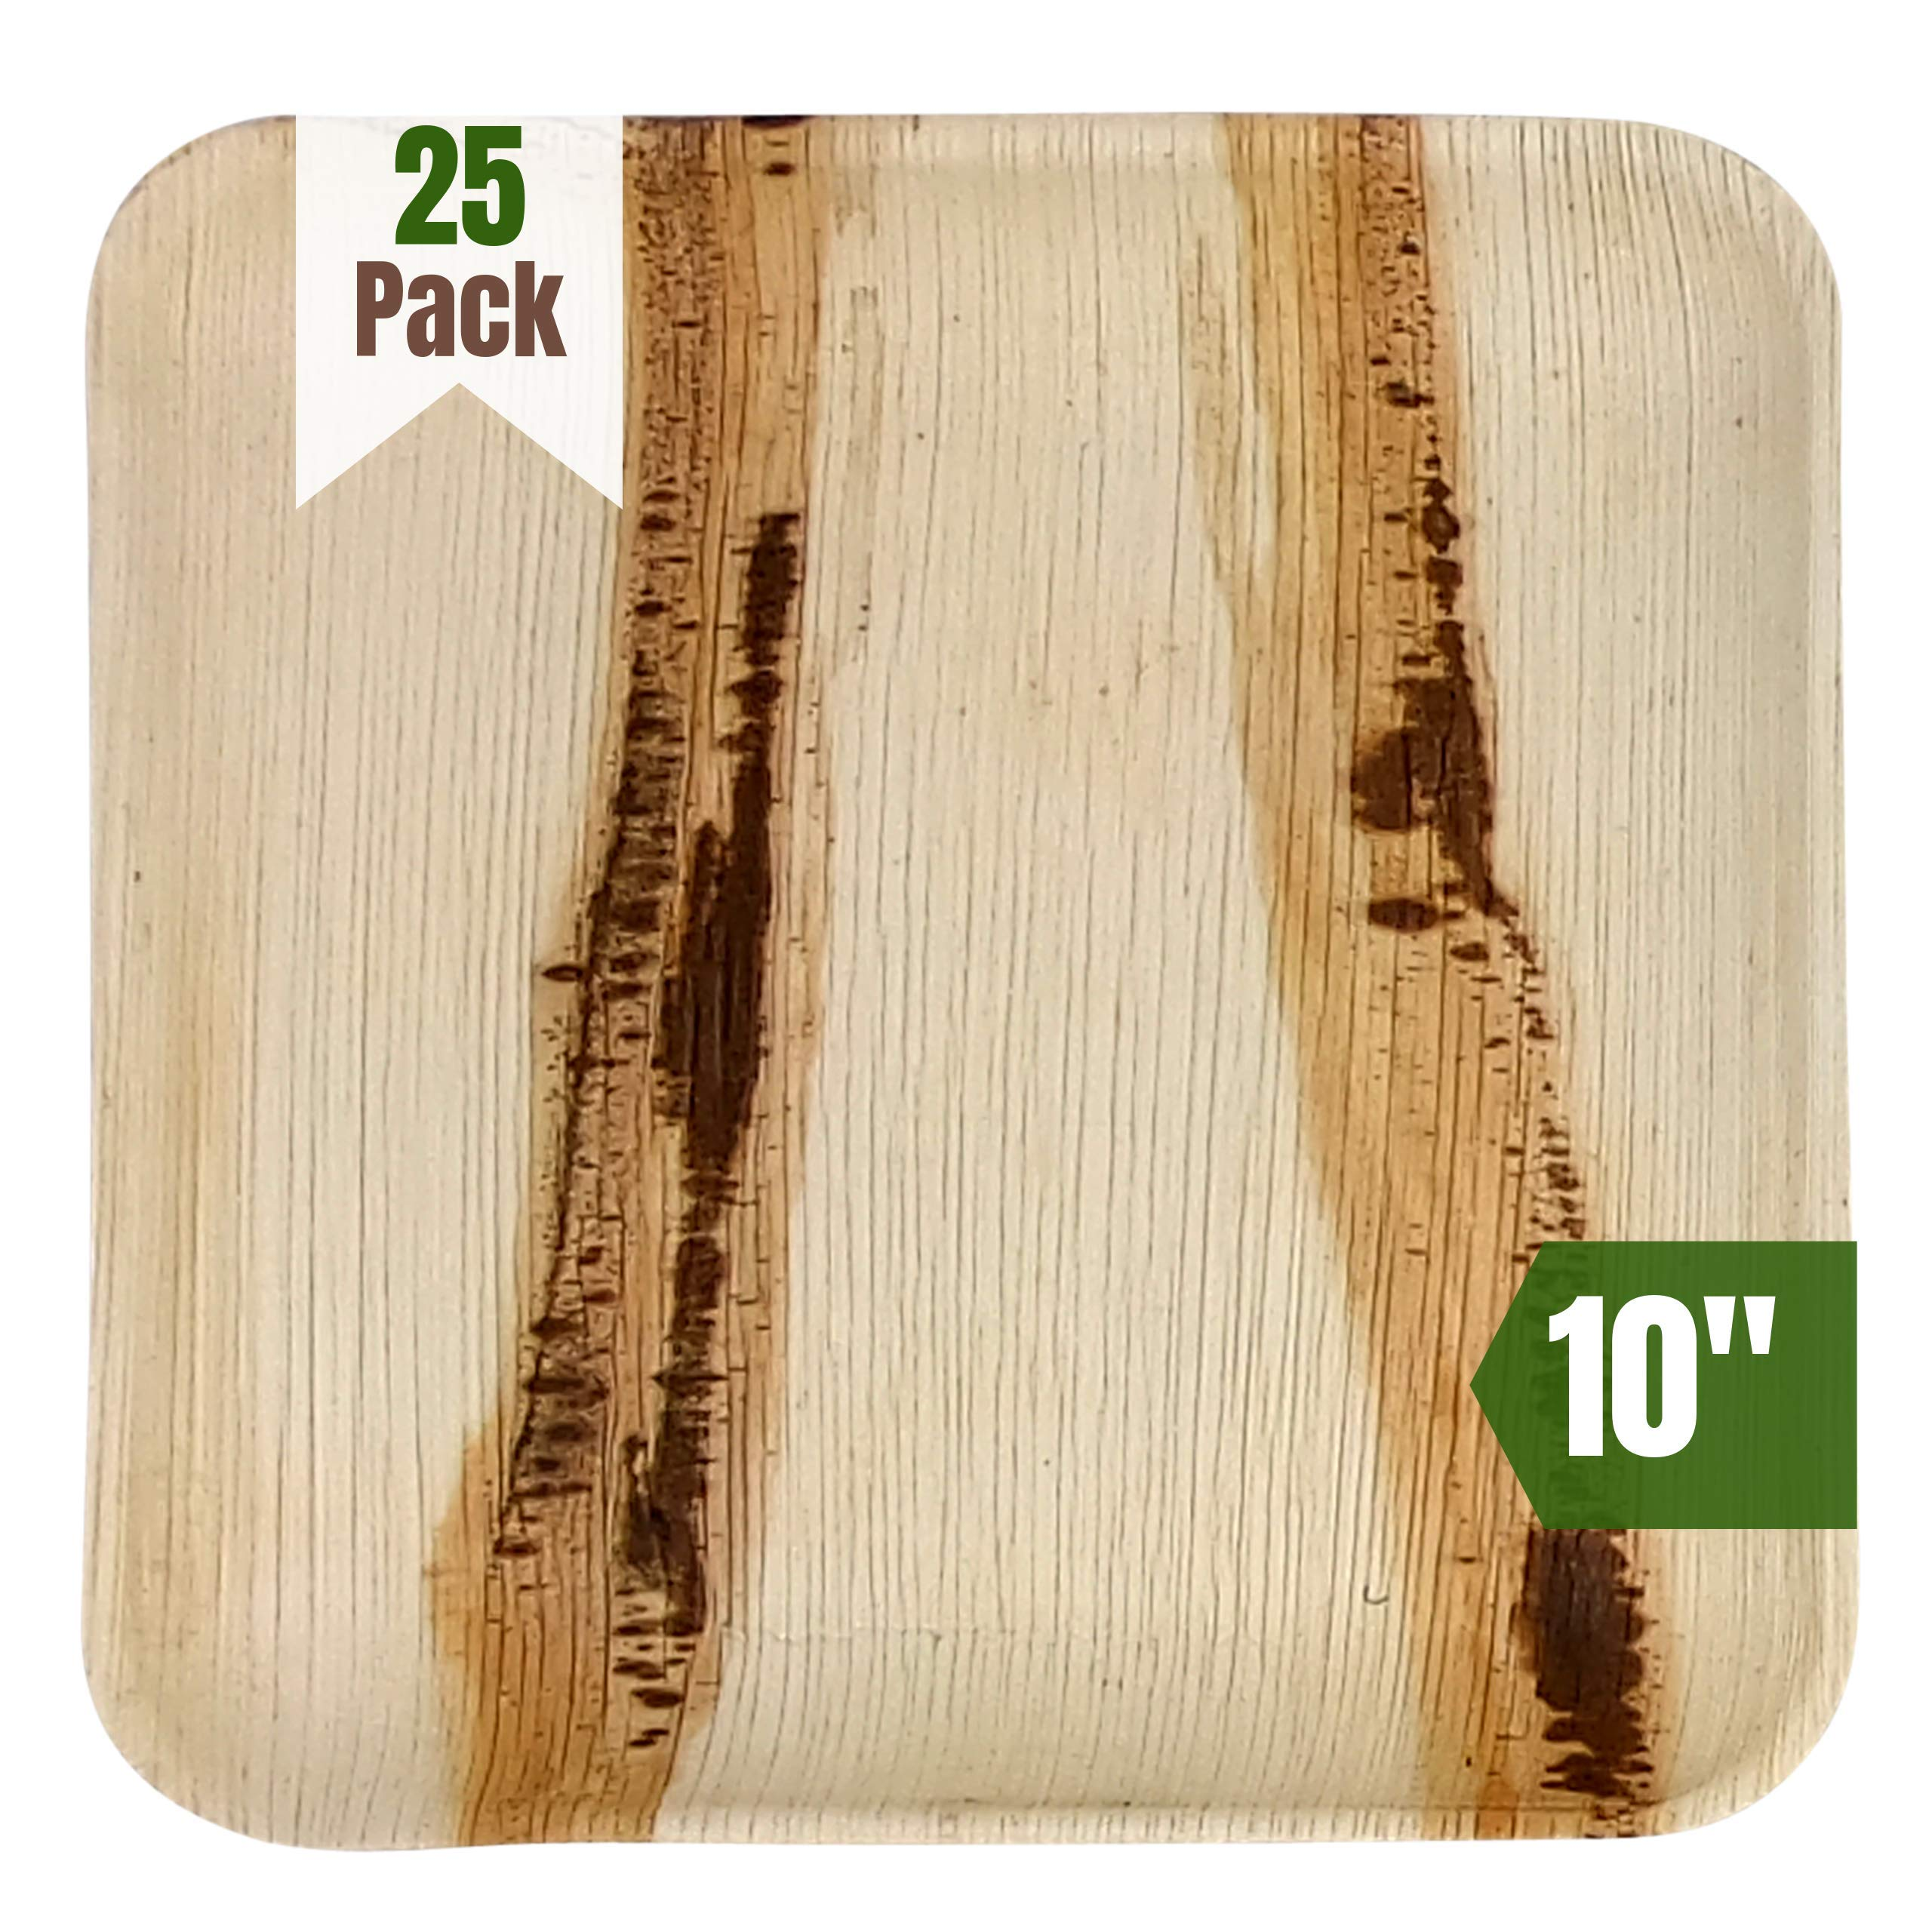 Cutie Green Palm Leaf Plates Set (Pack of 25) - 100% Eco-Friendly, Biodegradable and Compostable Disposable Plates - Heavy-Duty All Natural Dinnerware for Camping, BBQ, Outdoors (10'' Square) by Cutie Green